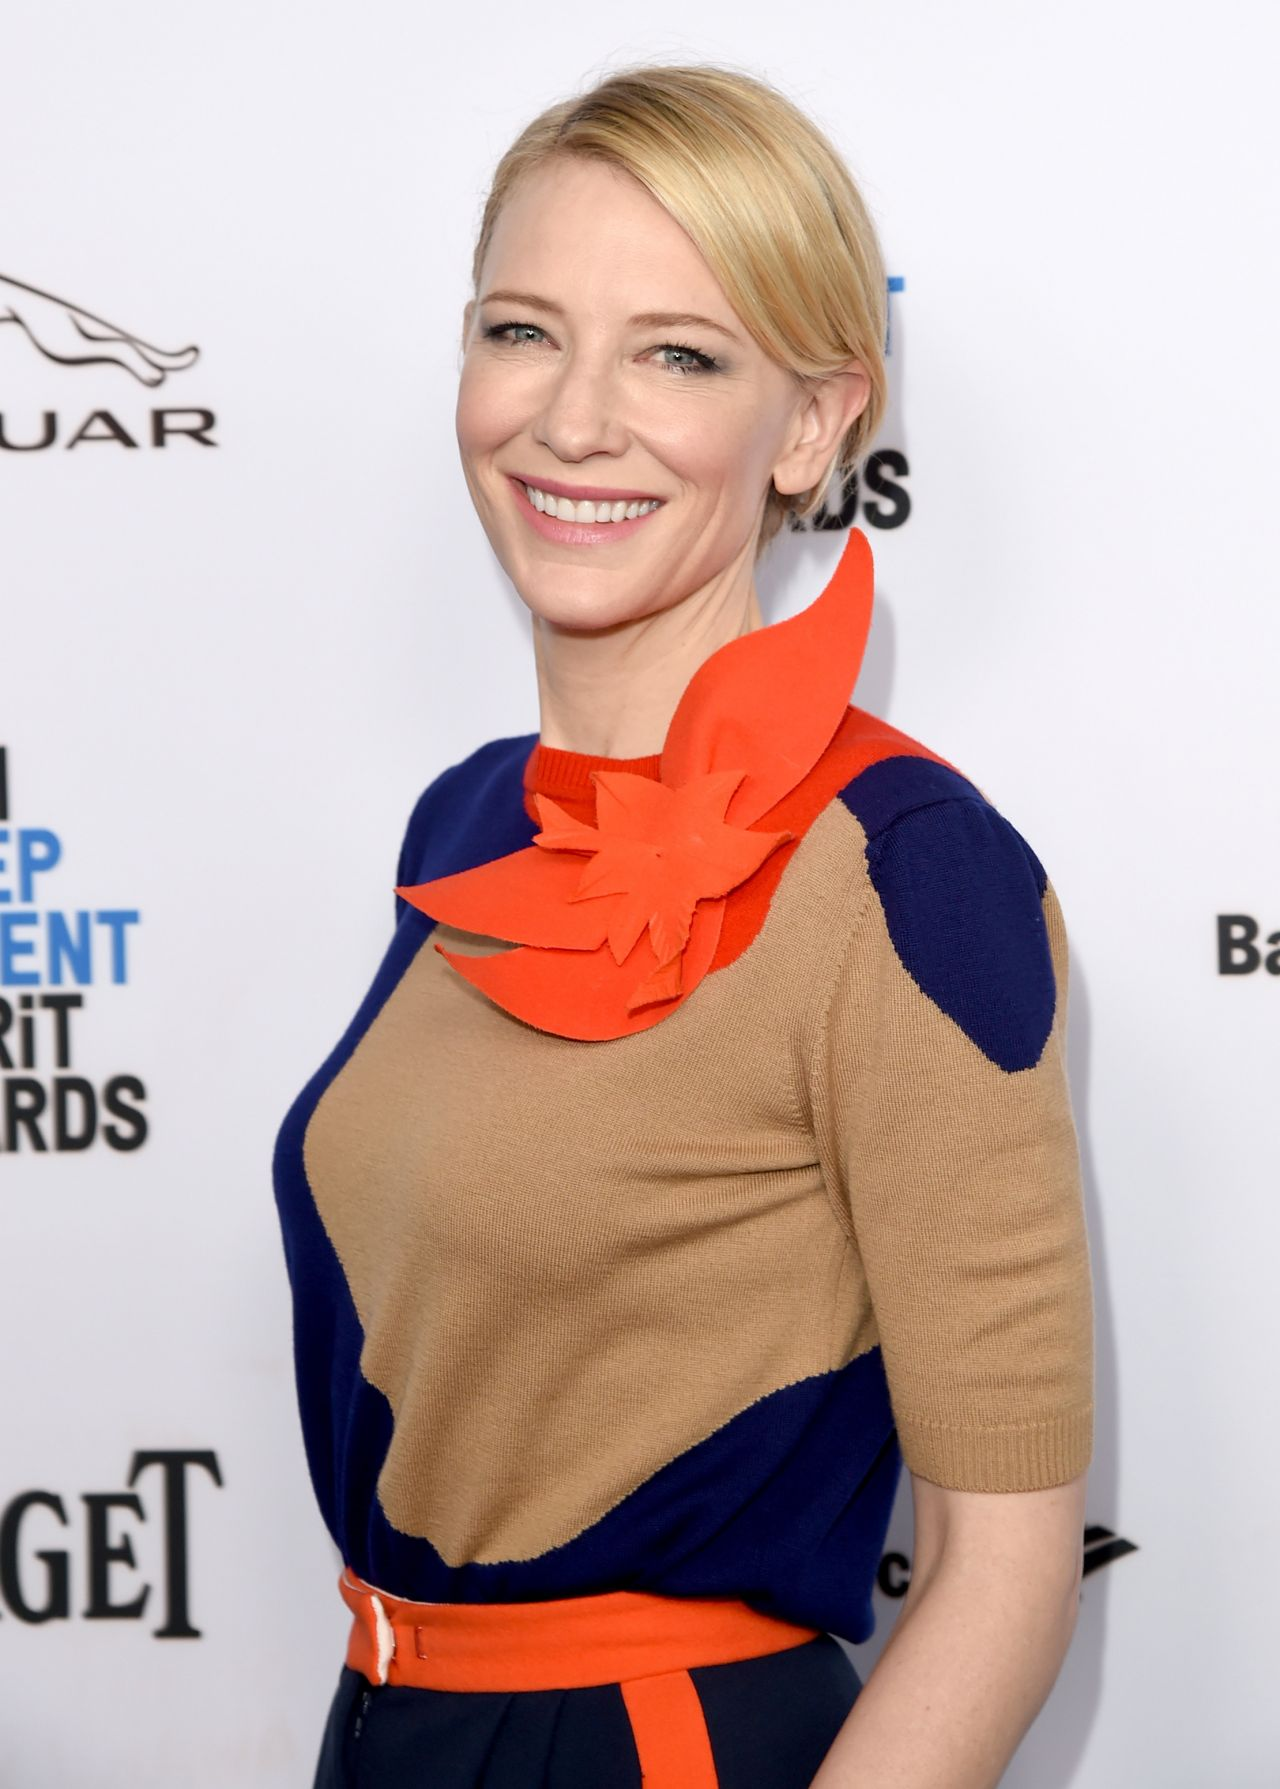 cate-blanchett-2016-film-independent-filmmaker-grant-and-spirit-award-nominees-brunch-in-west-hollywood-ca-1